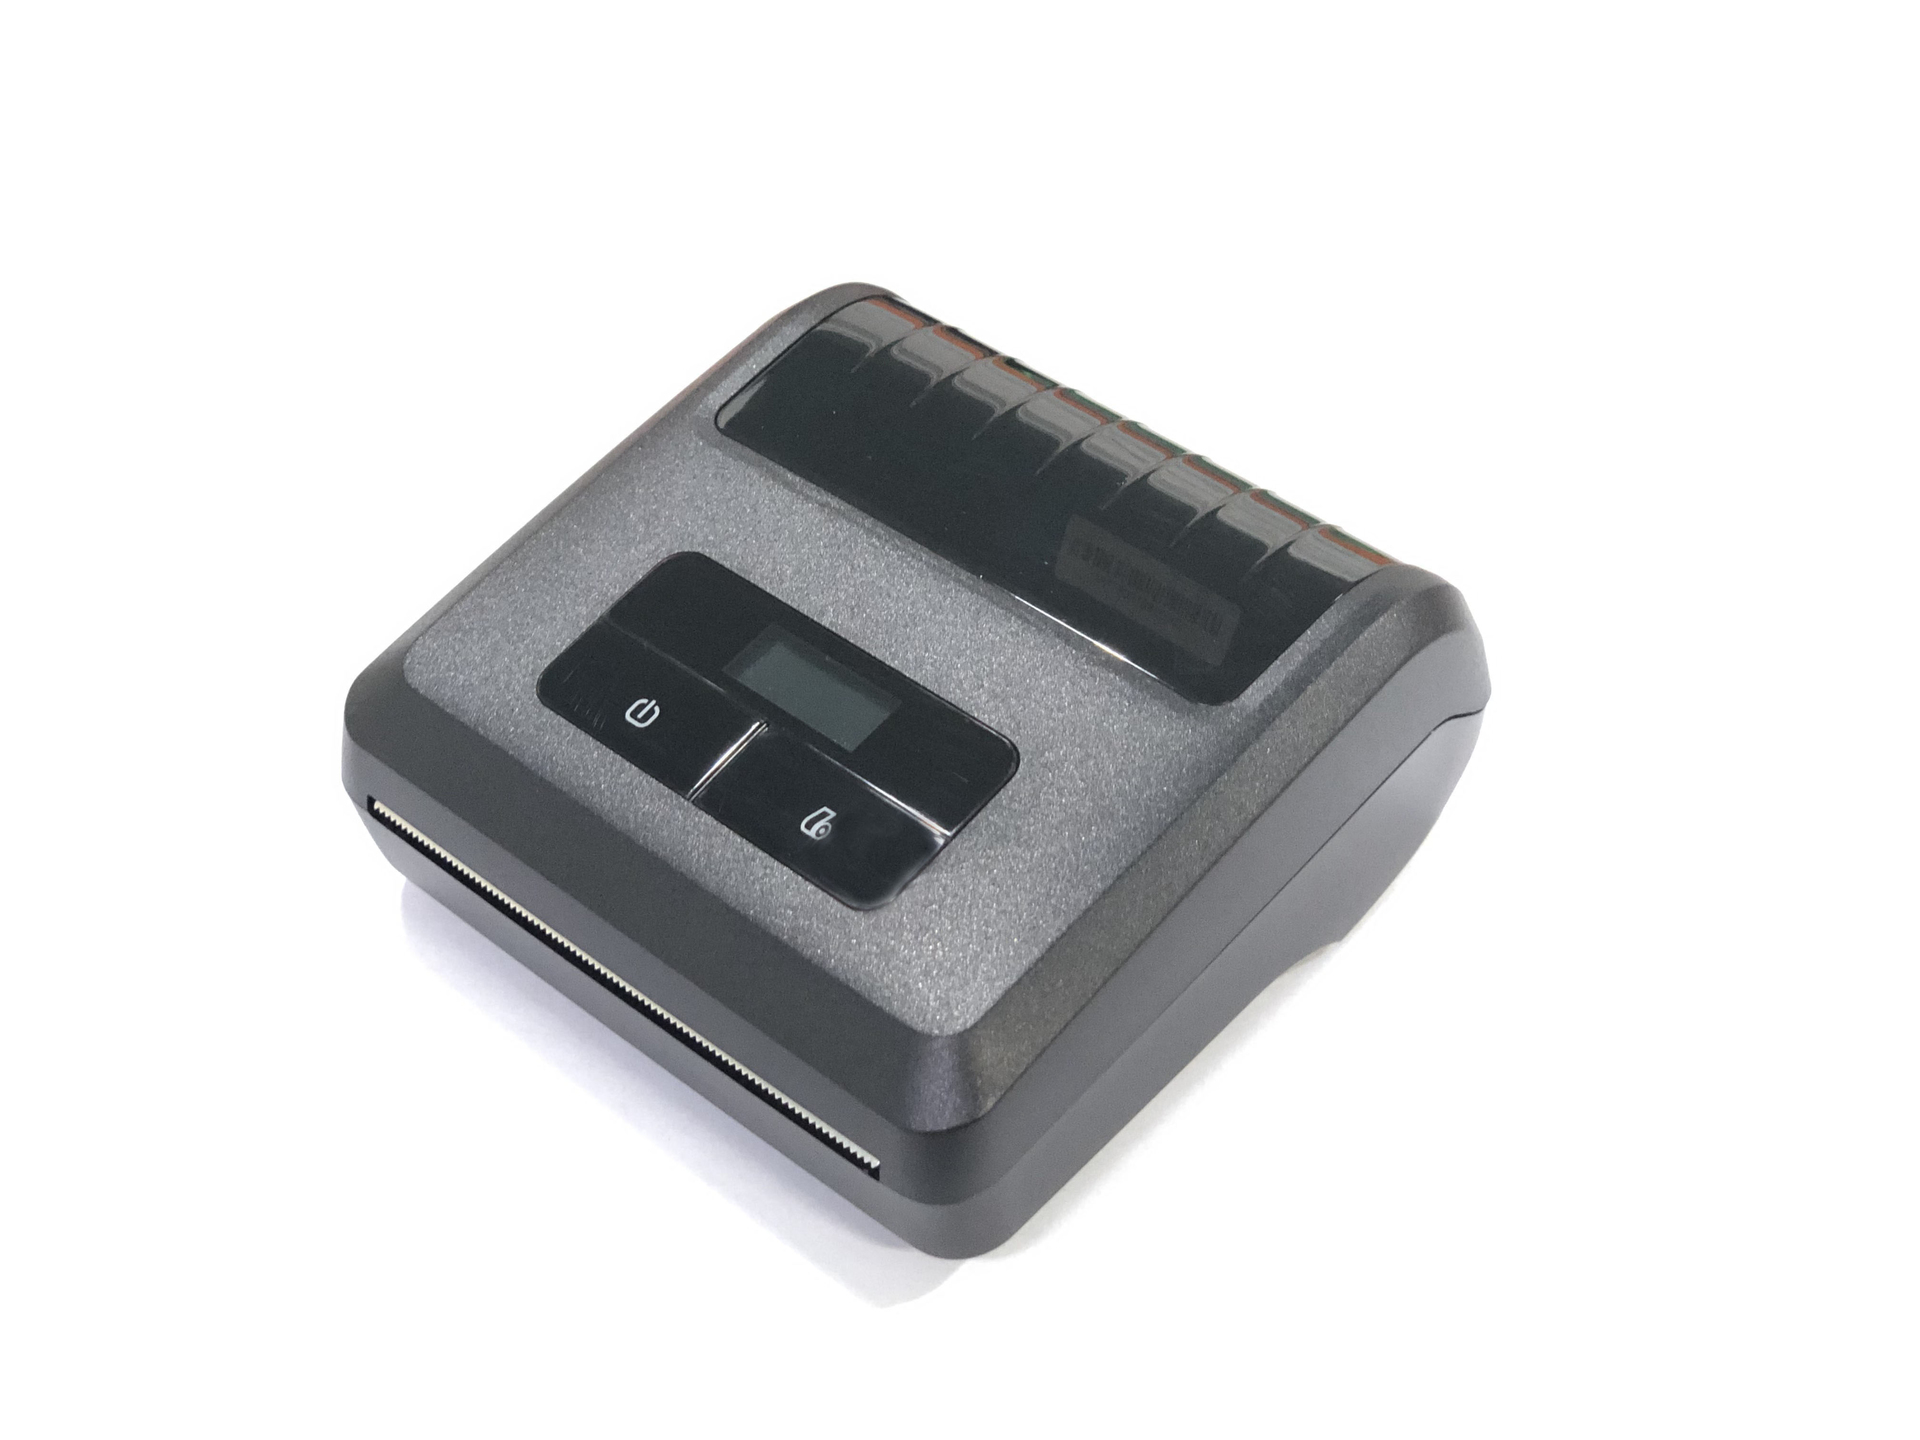 3inch Portable Mobile Mini Bluetooth Label Printer For Android and IOS